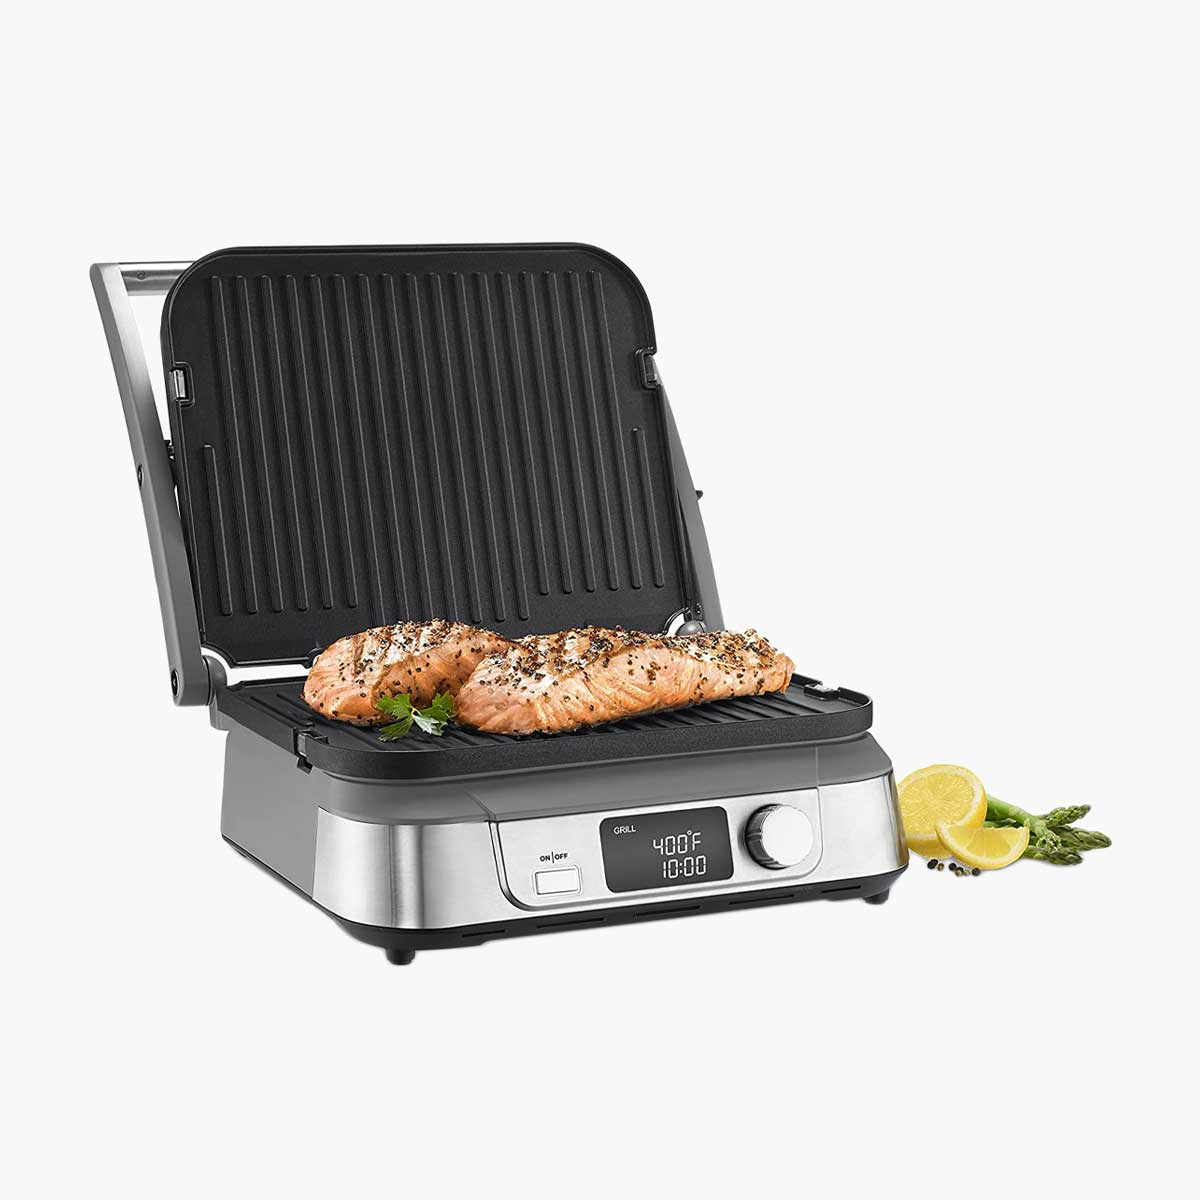 Cuisinart Electric Griddler in use with salmon.